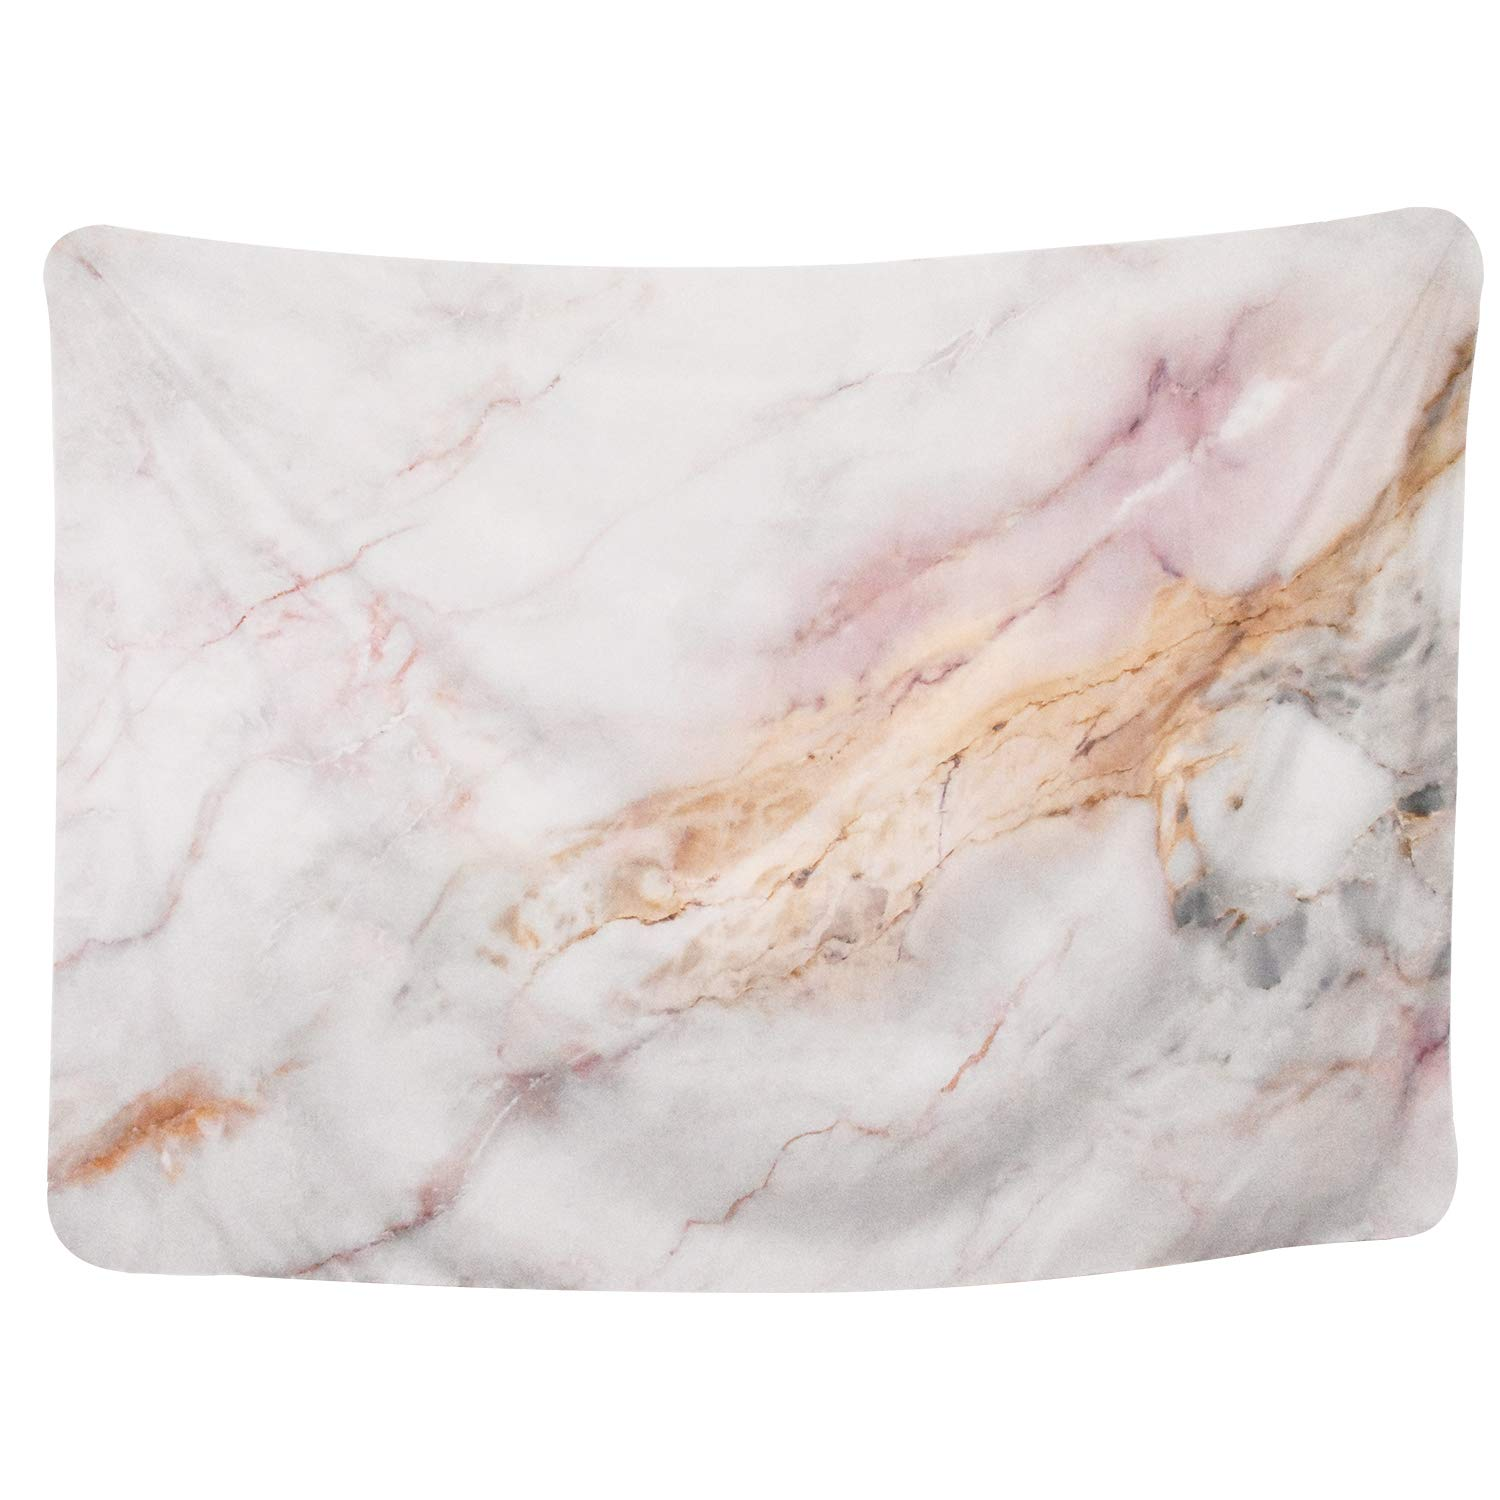 Yinhua Tapestry Marble Pattern Tapestry with Crack Wall Hanging Tapestry Decoration for Living Room Bedroom Dorm